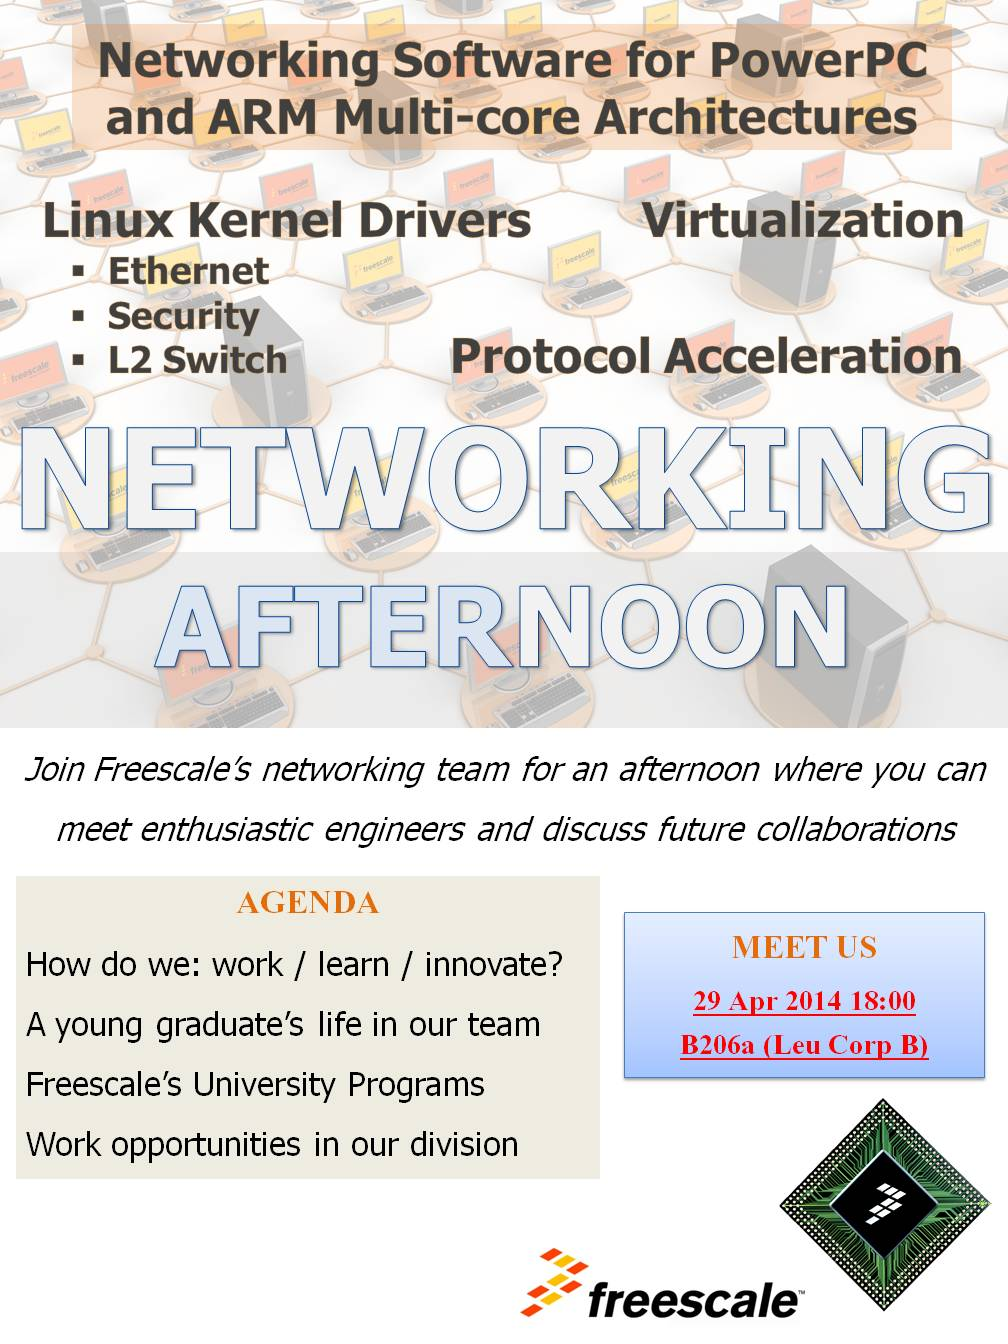 Networking Afternoon